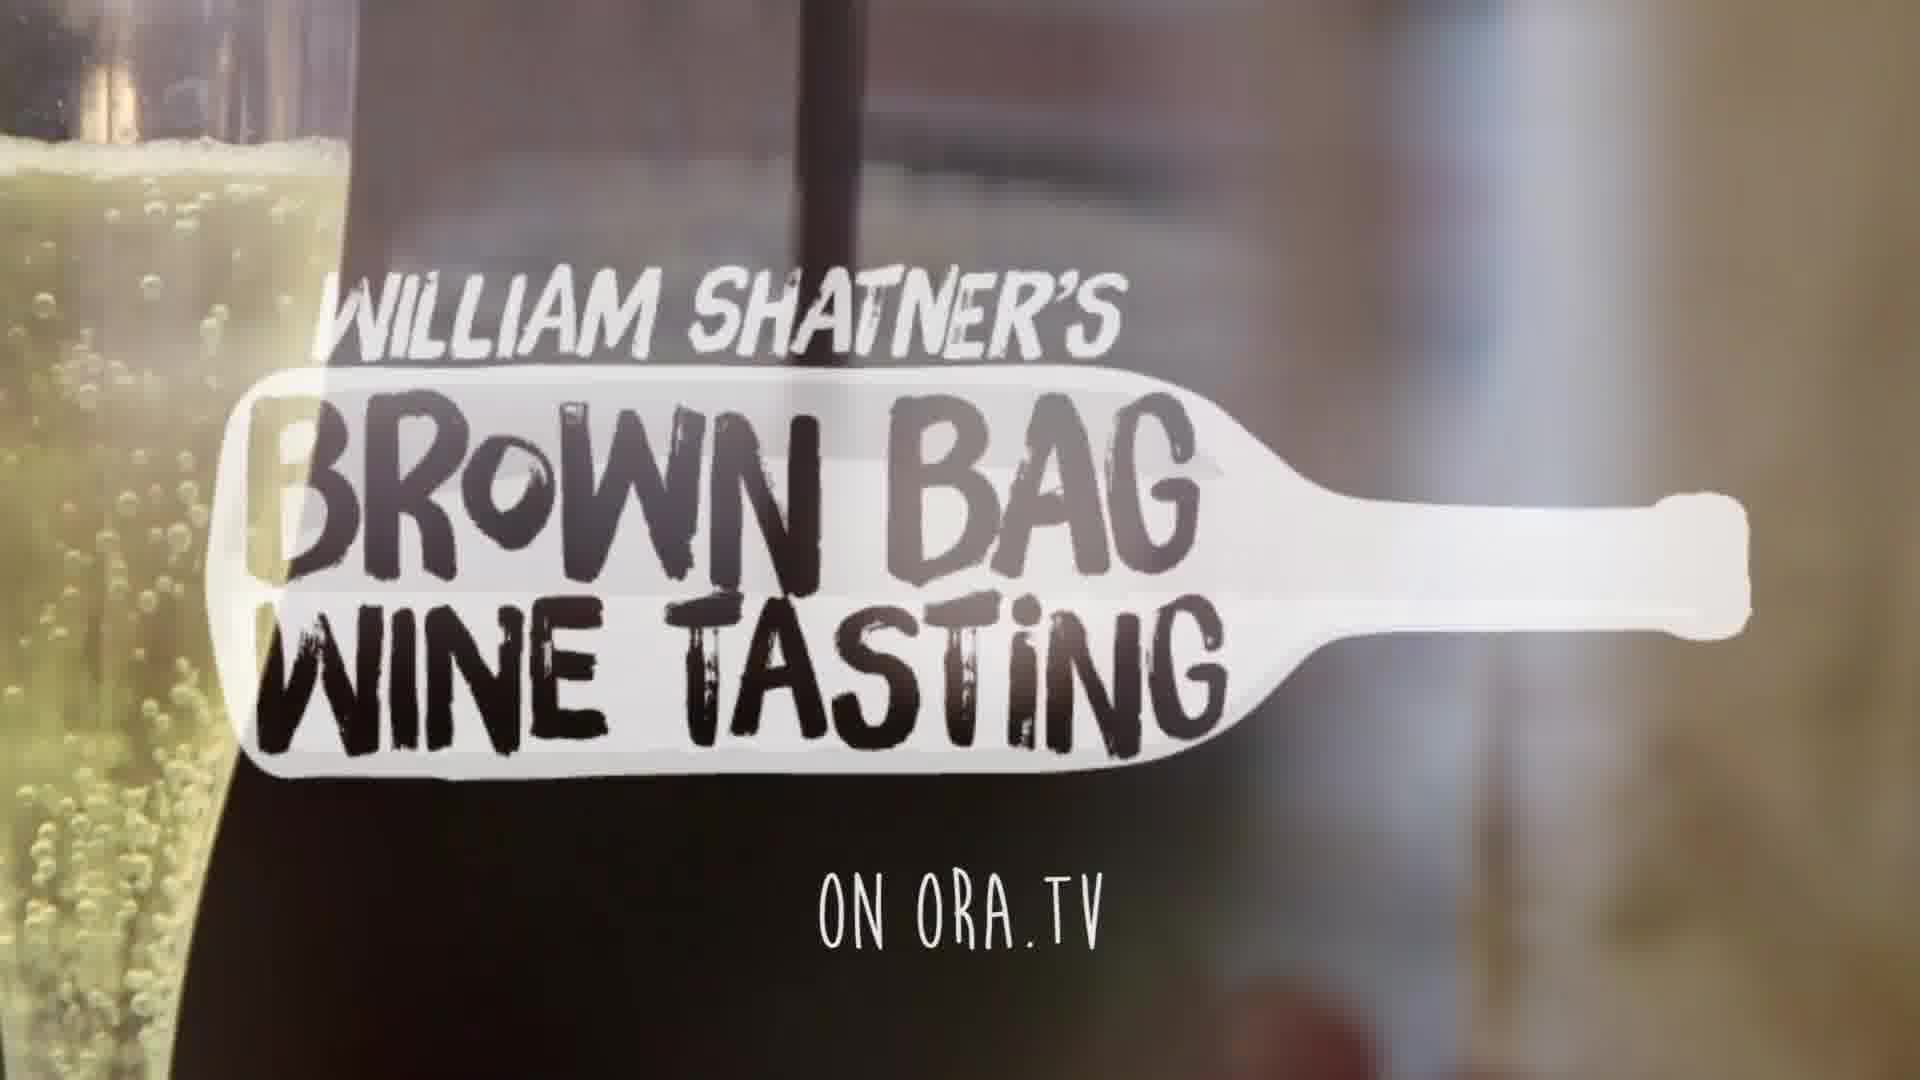 Brown Bag Wine Tasting with William Shatner on OraTV